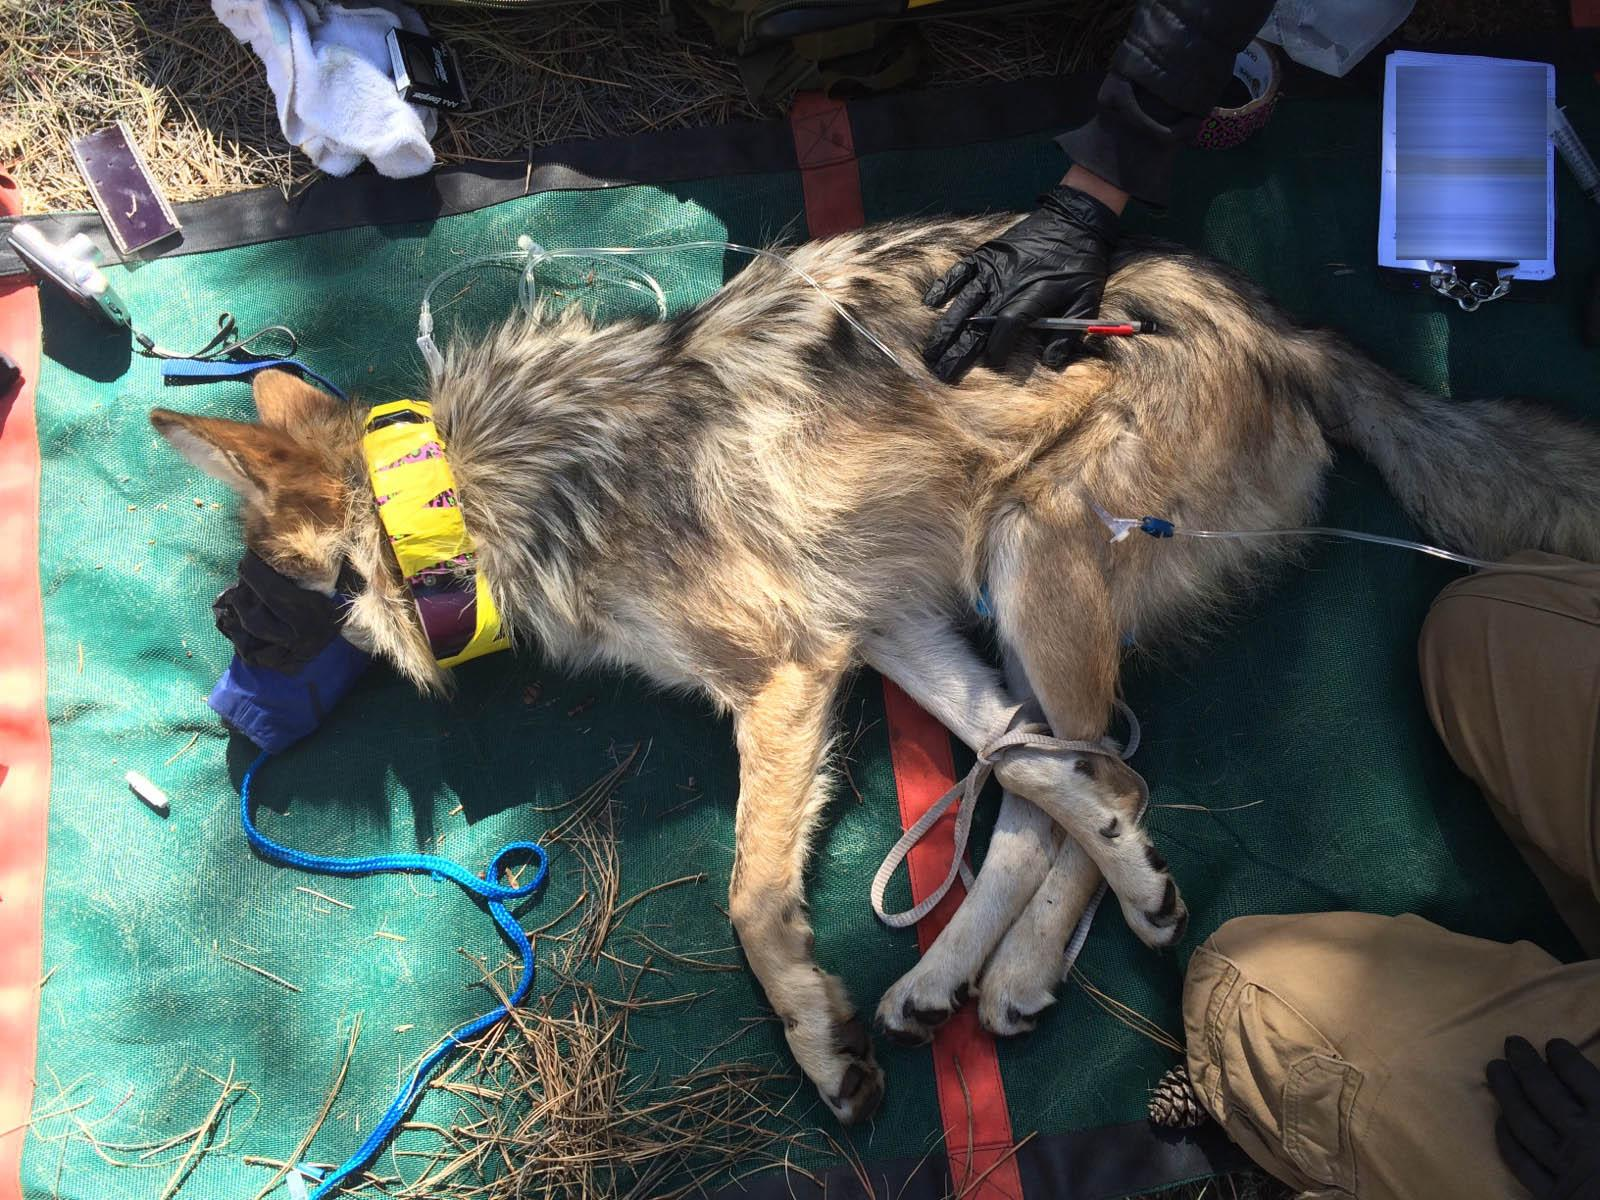 Connie, a Mexican wolf born at Brookfield Zoo, is outfitted with a GPS radio collar by workers from the U.S. Fish and Wildlife Service. (Courtesy U.S. Fish and Wildlife Service Interagency Field Team)